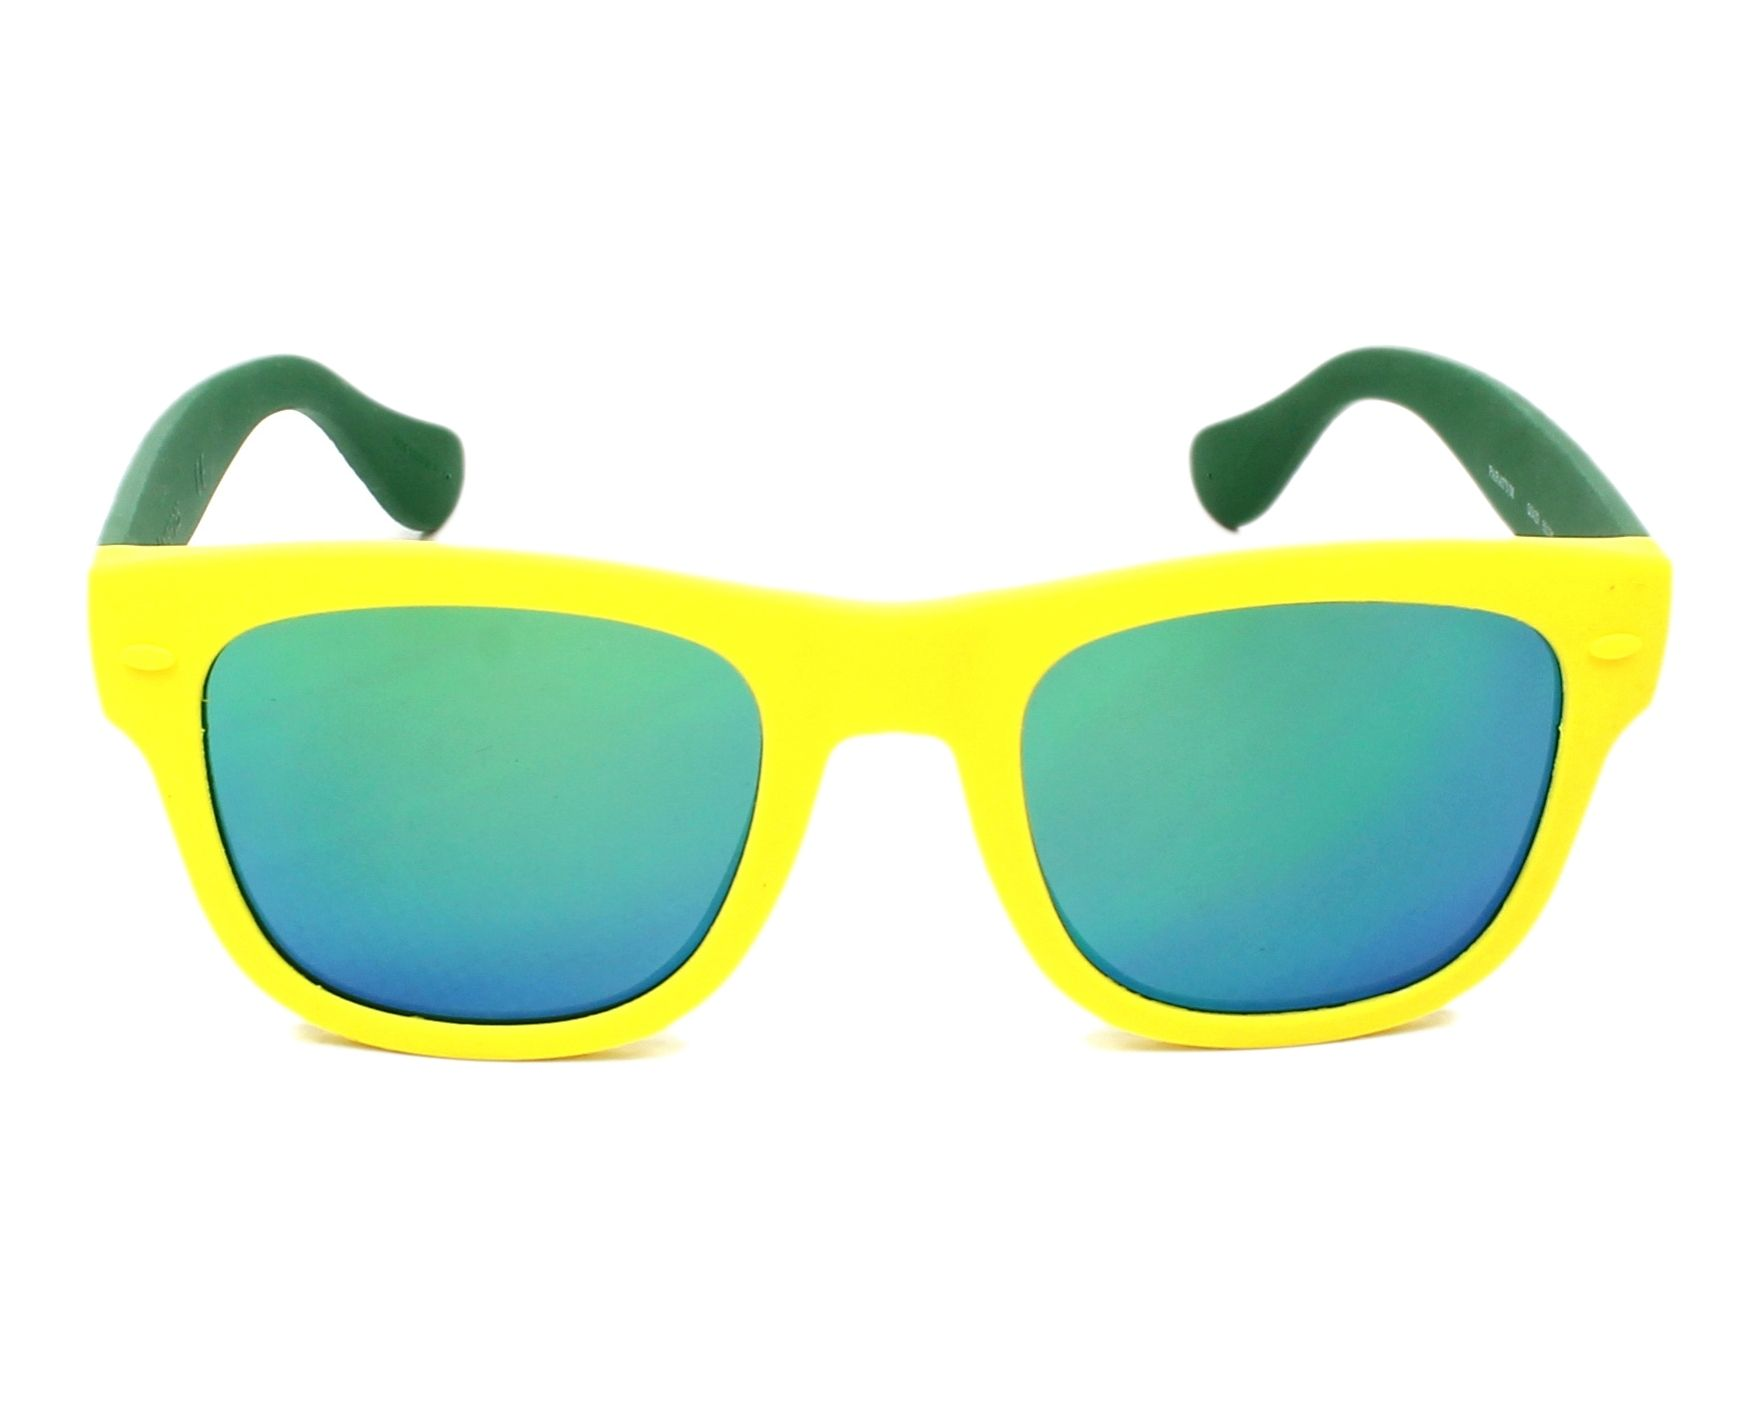 30d7711a7d9 Sunglasses Havaianas PARATY-S QSX Z9 50-21 Yellow Green front view